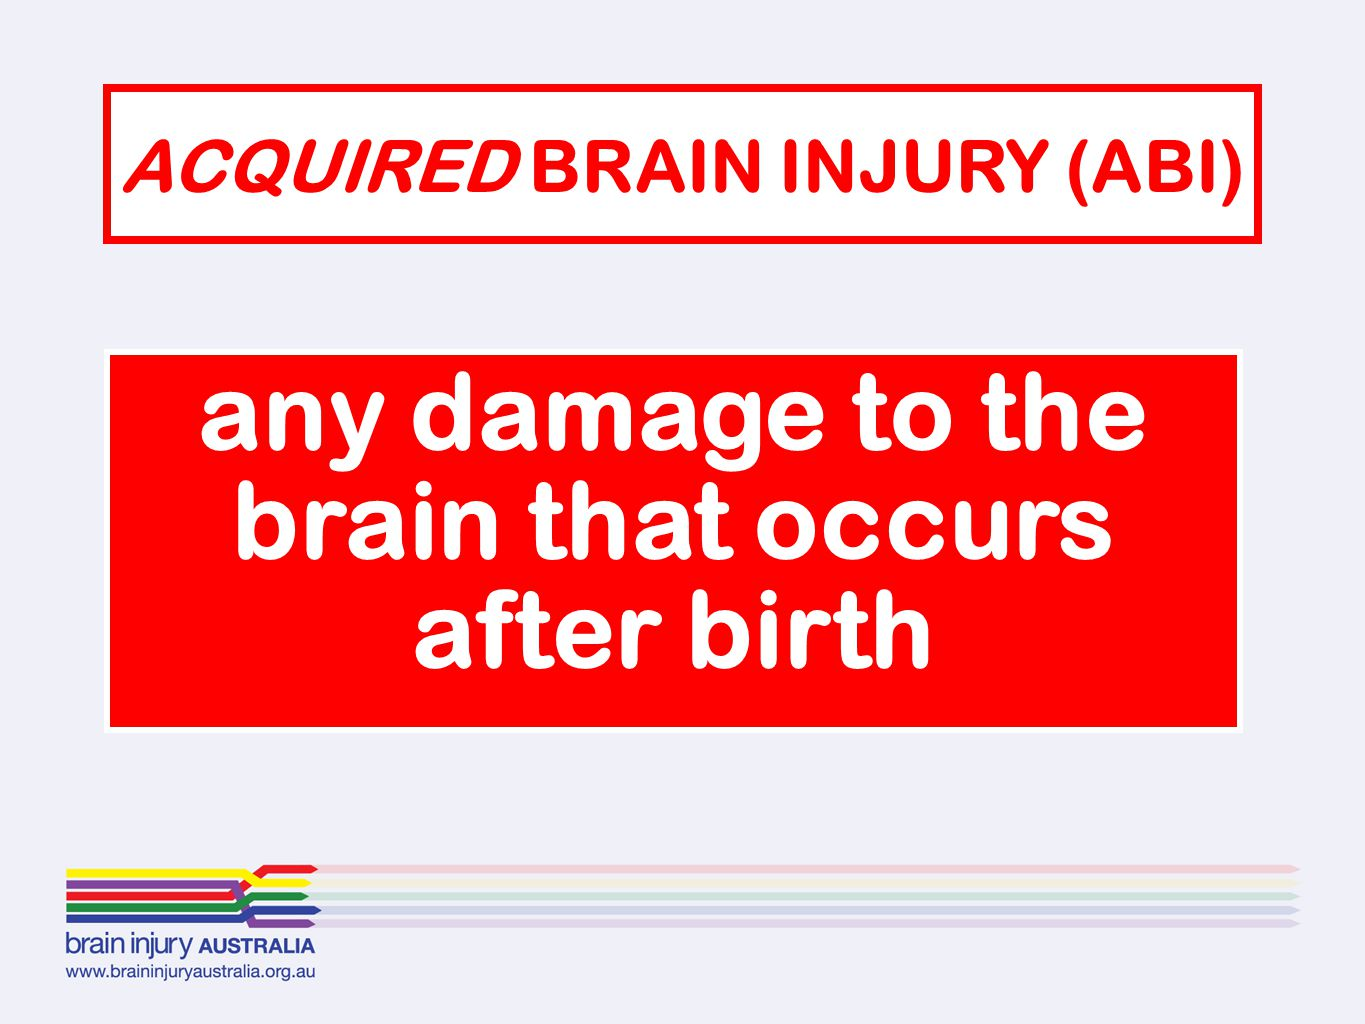 ACQUIRED BRAIN INJURY (ABI) any damage to the brain that occurs after birth